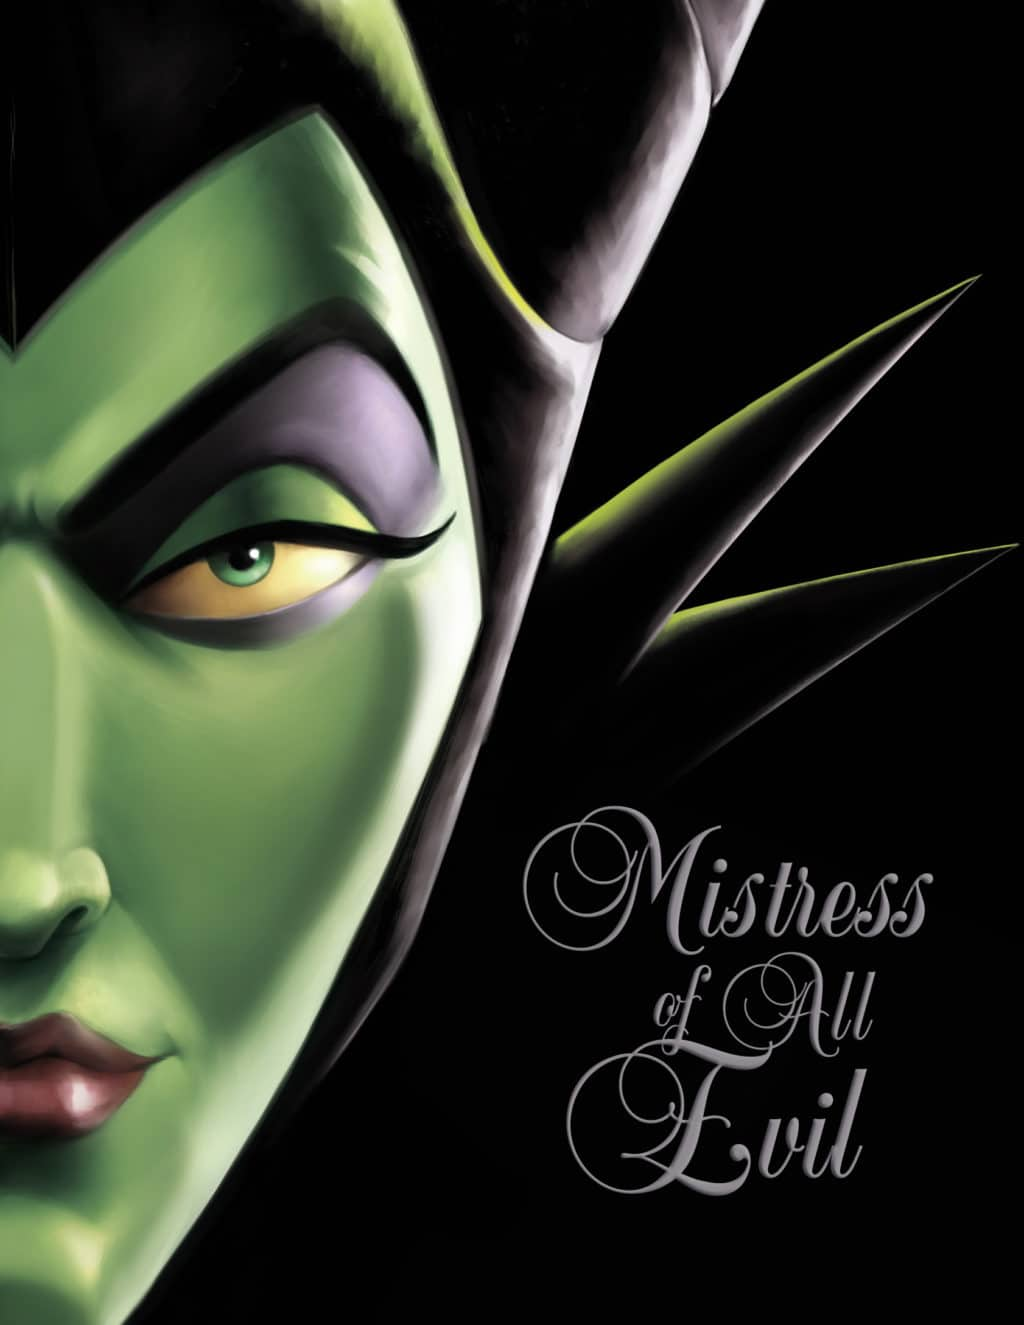 Disney Villains Book Series Mistress Of All Evil Free